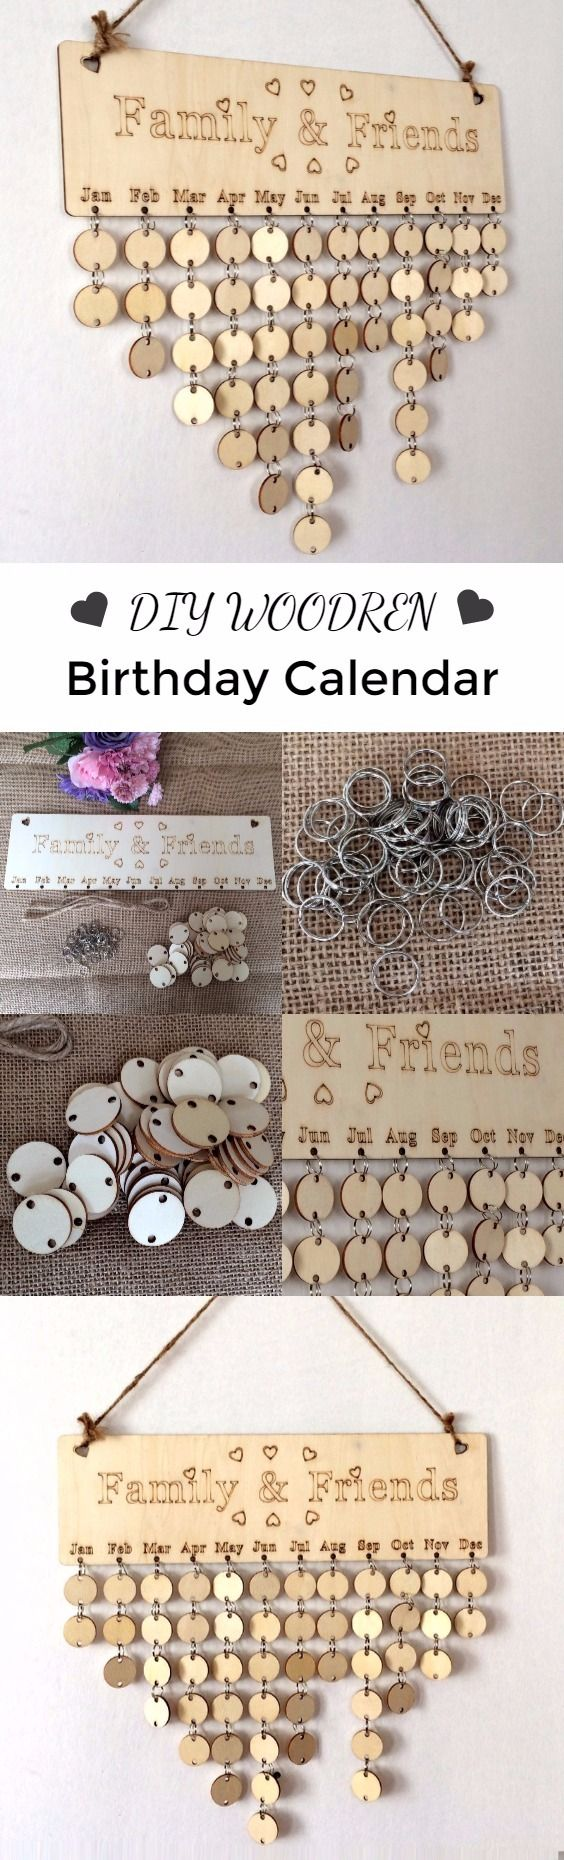 DIY Wooden Family And Friends Birthday Calendar Reminder Board